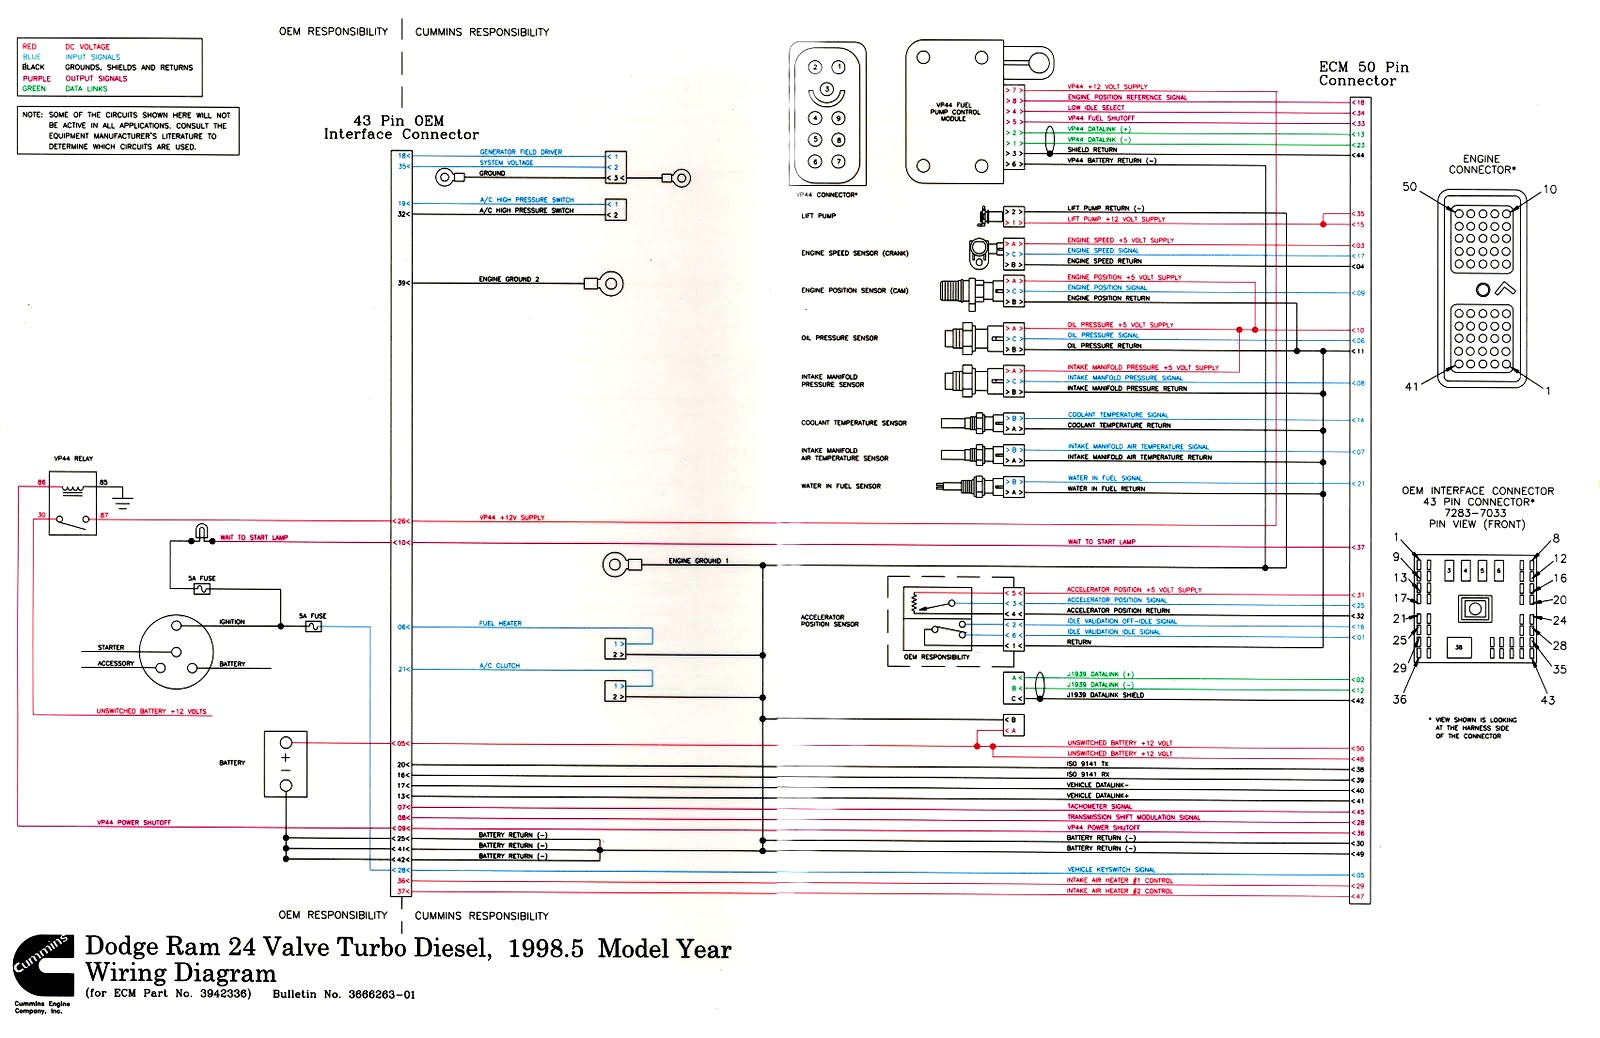 Cummins M11 Ecm Wiring Diagram Famous Cat C13 Schematics Photos Electrical Circuit